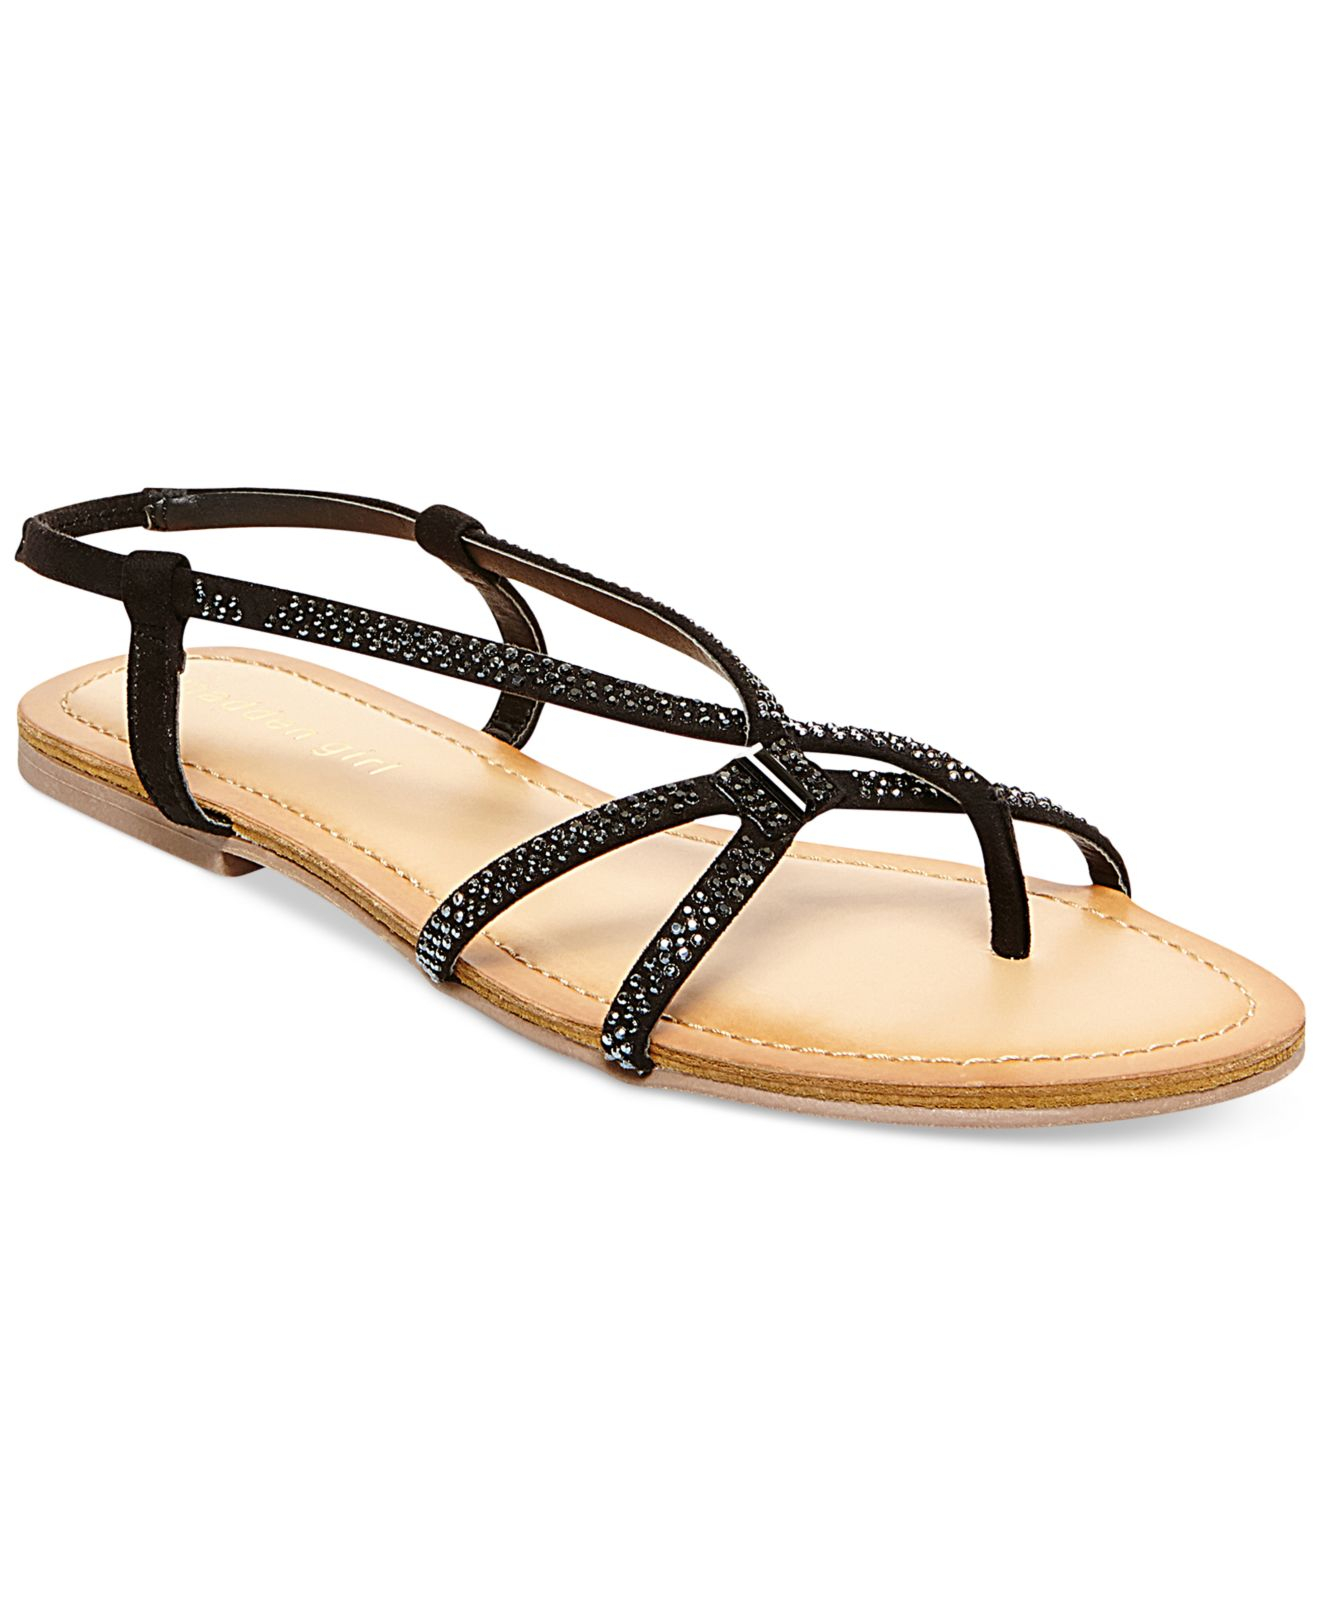 463f89d9dd22 Gallery. Previously sold at  Macy s · Women s Gladiator Sandals ...